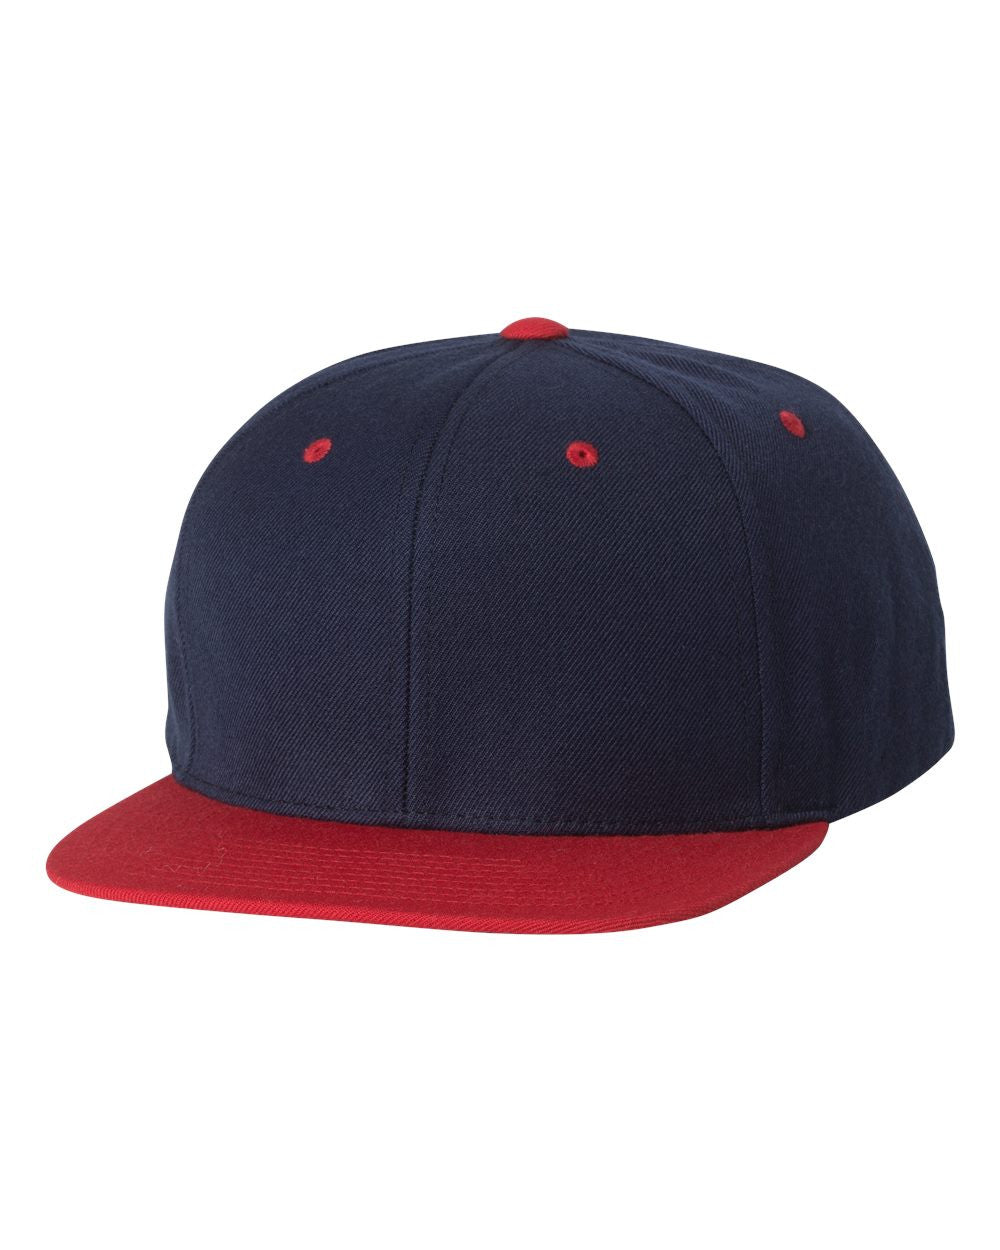 12 Custom Embroidered Snap Backs (Yupoong 6089M Snapbacks)